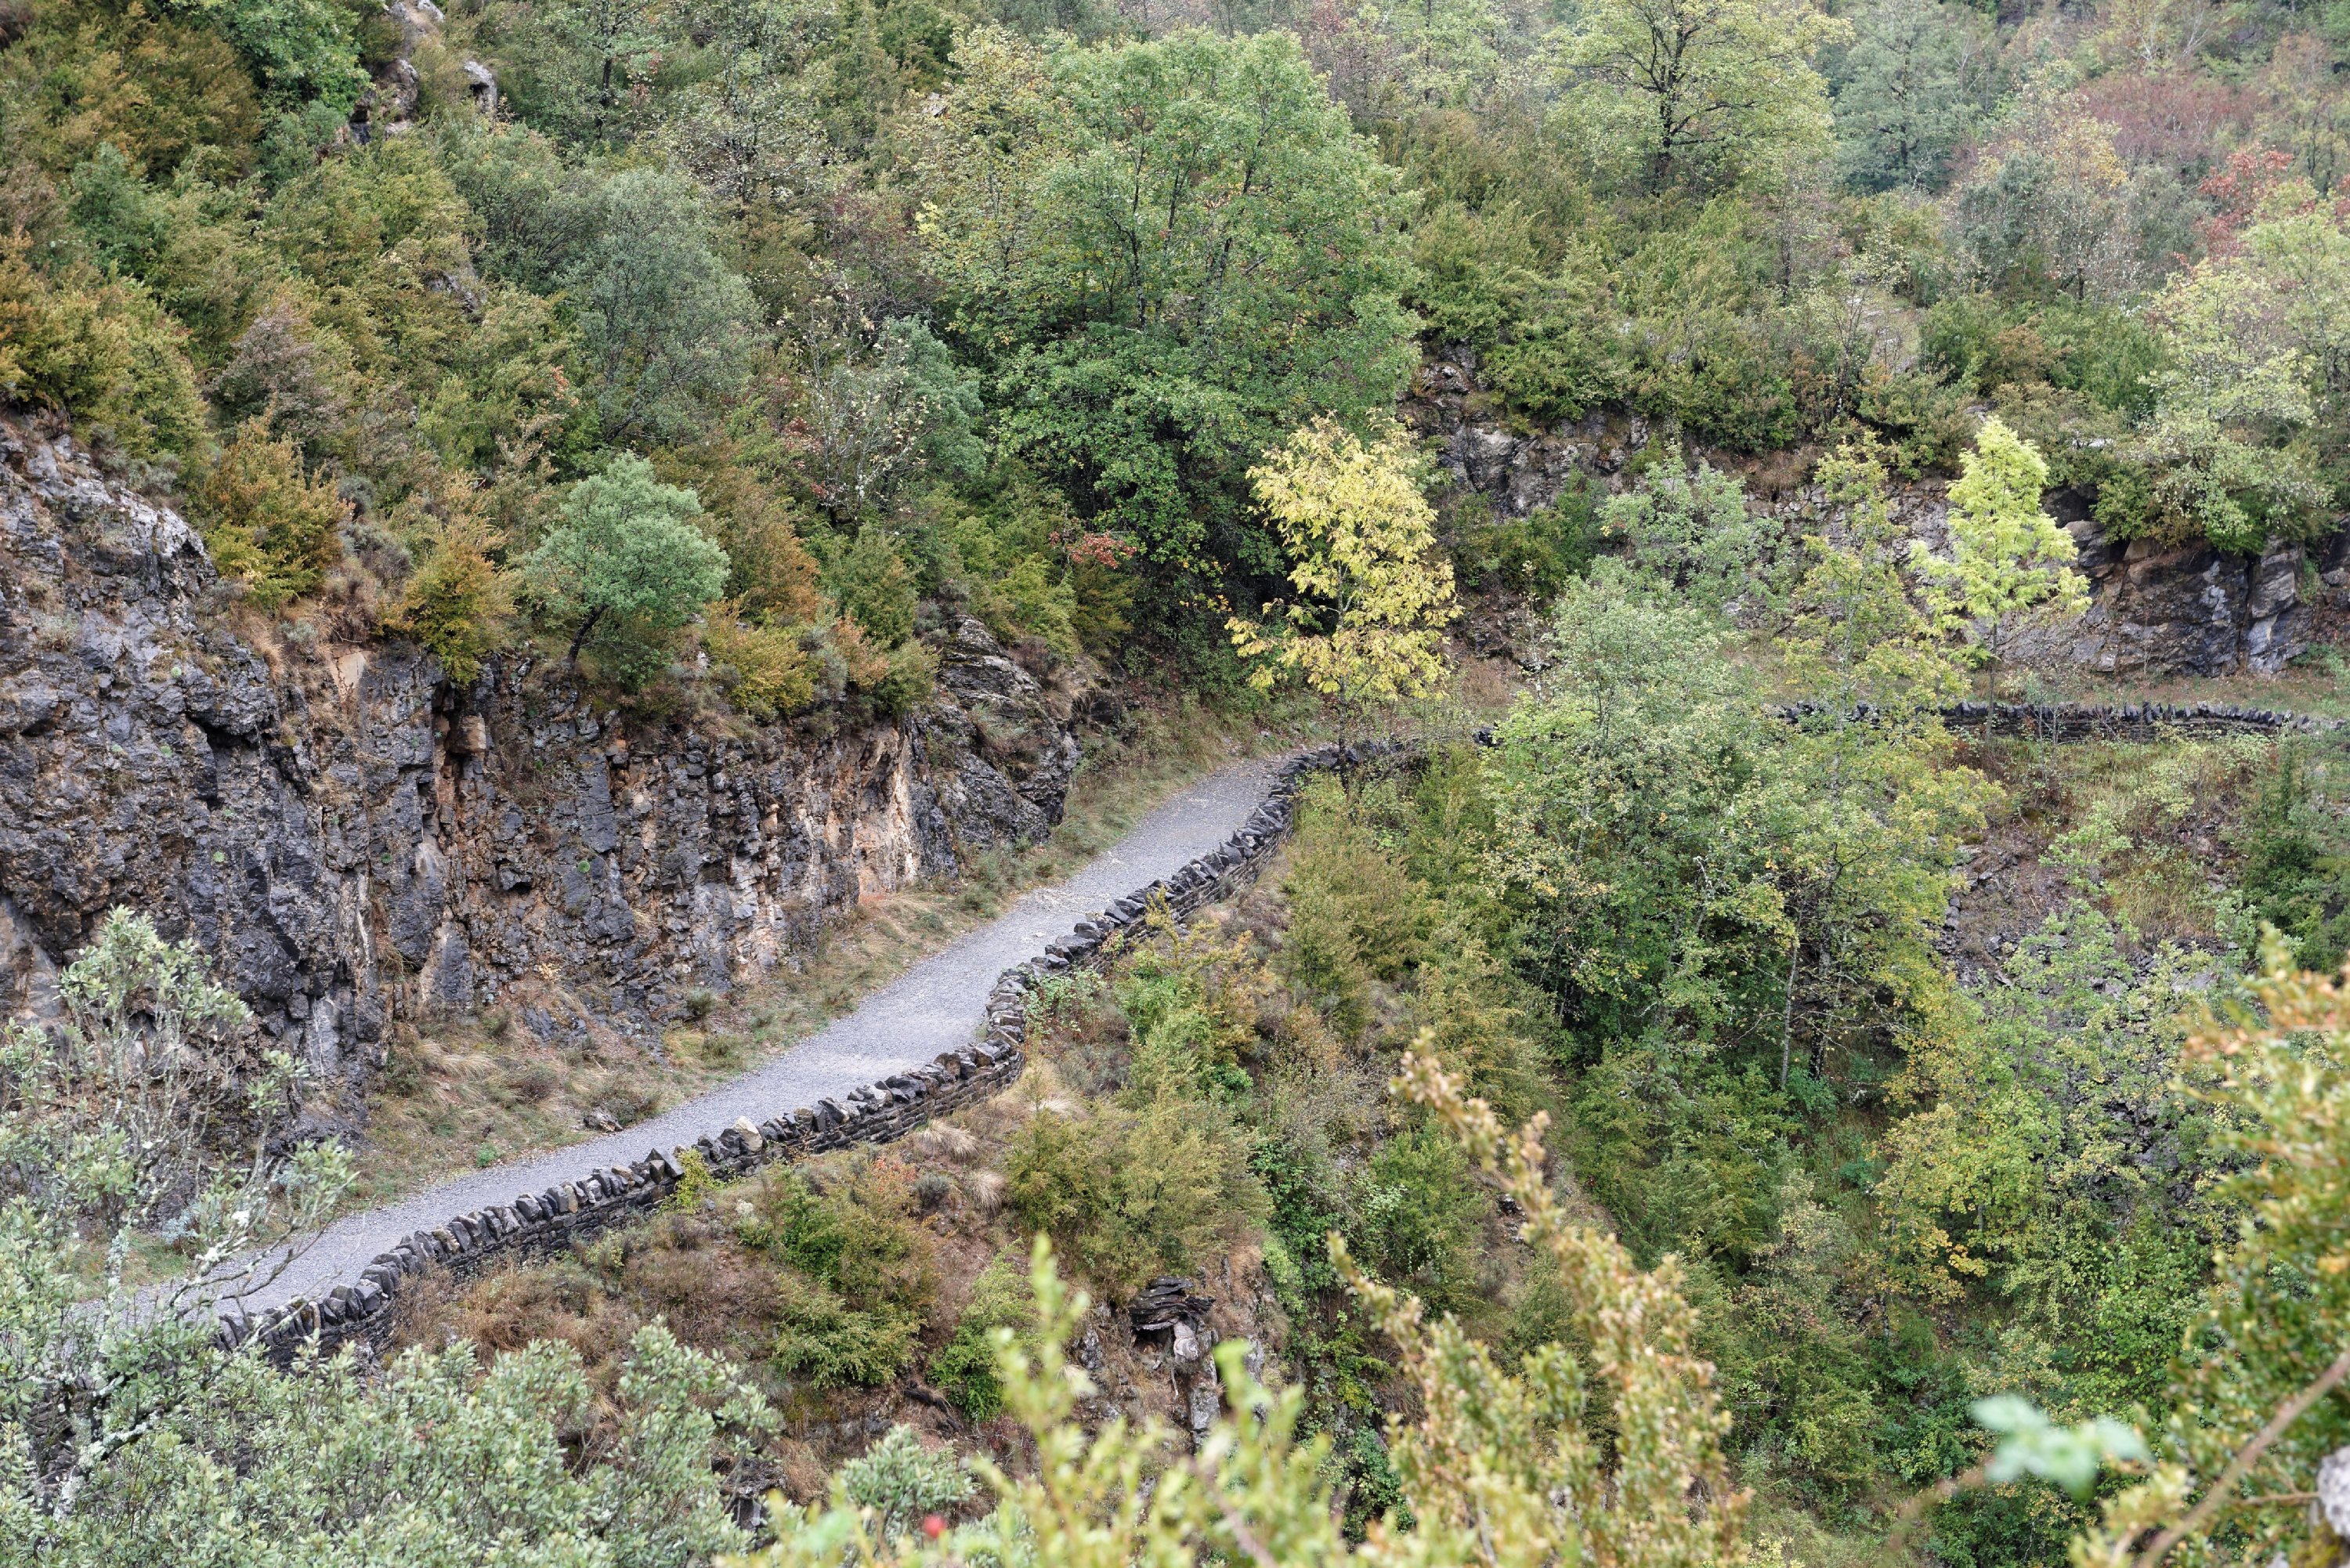 161013-3-canyon-danisclo-sobrarbe-15